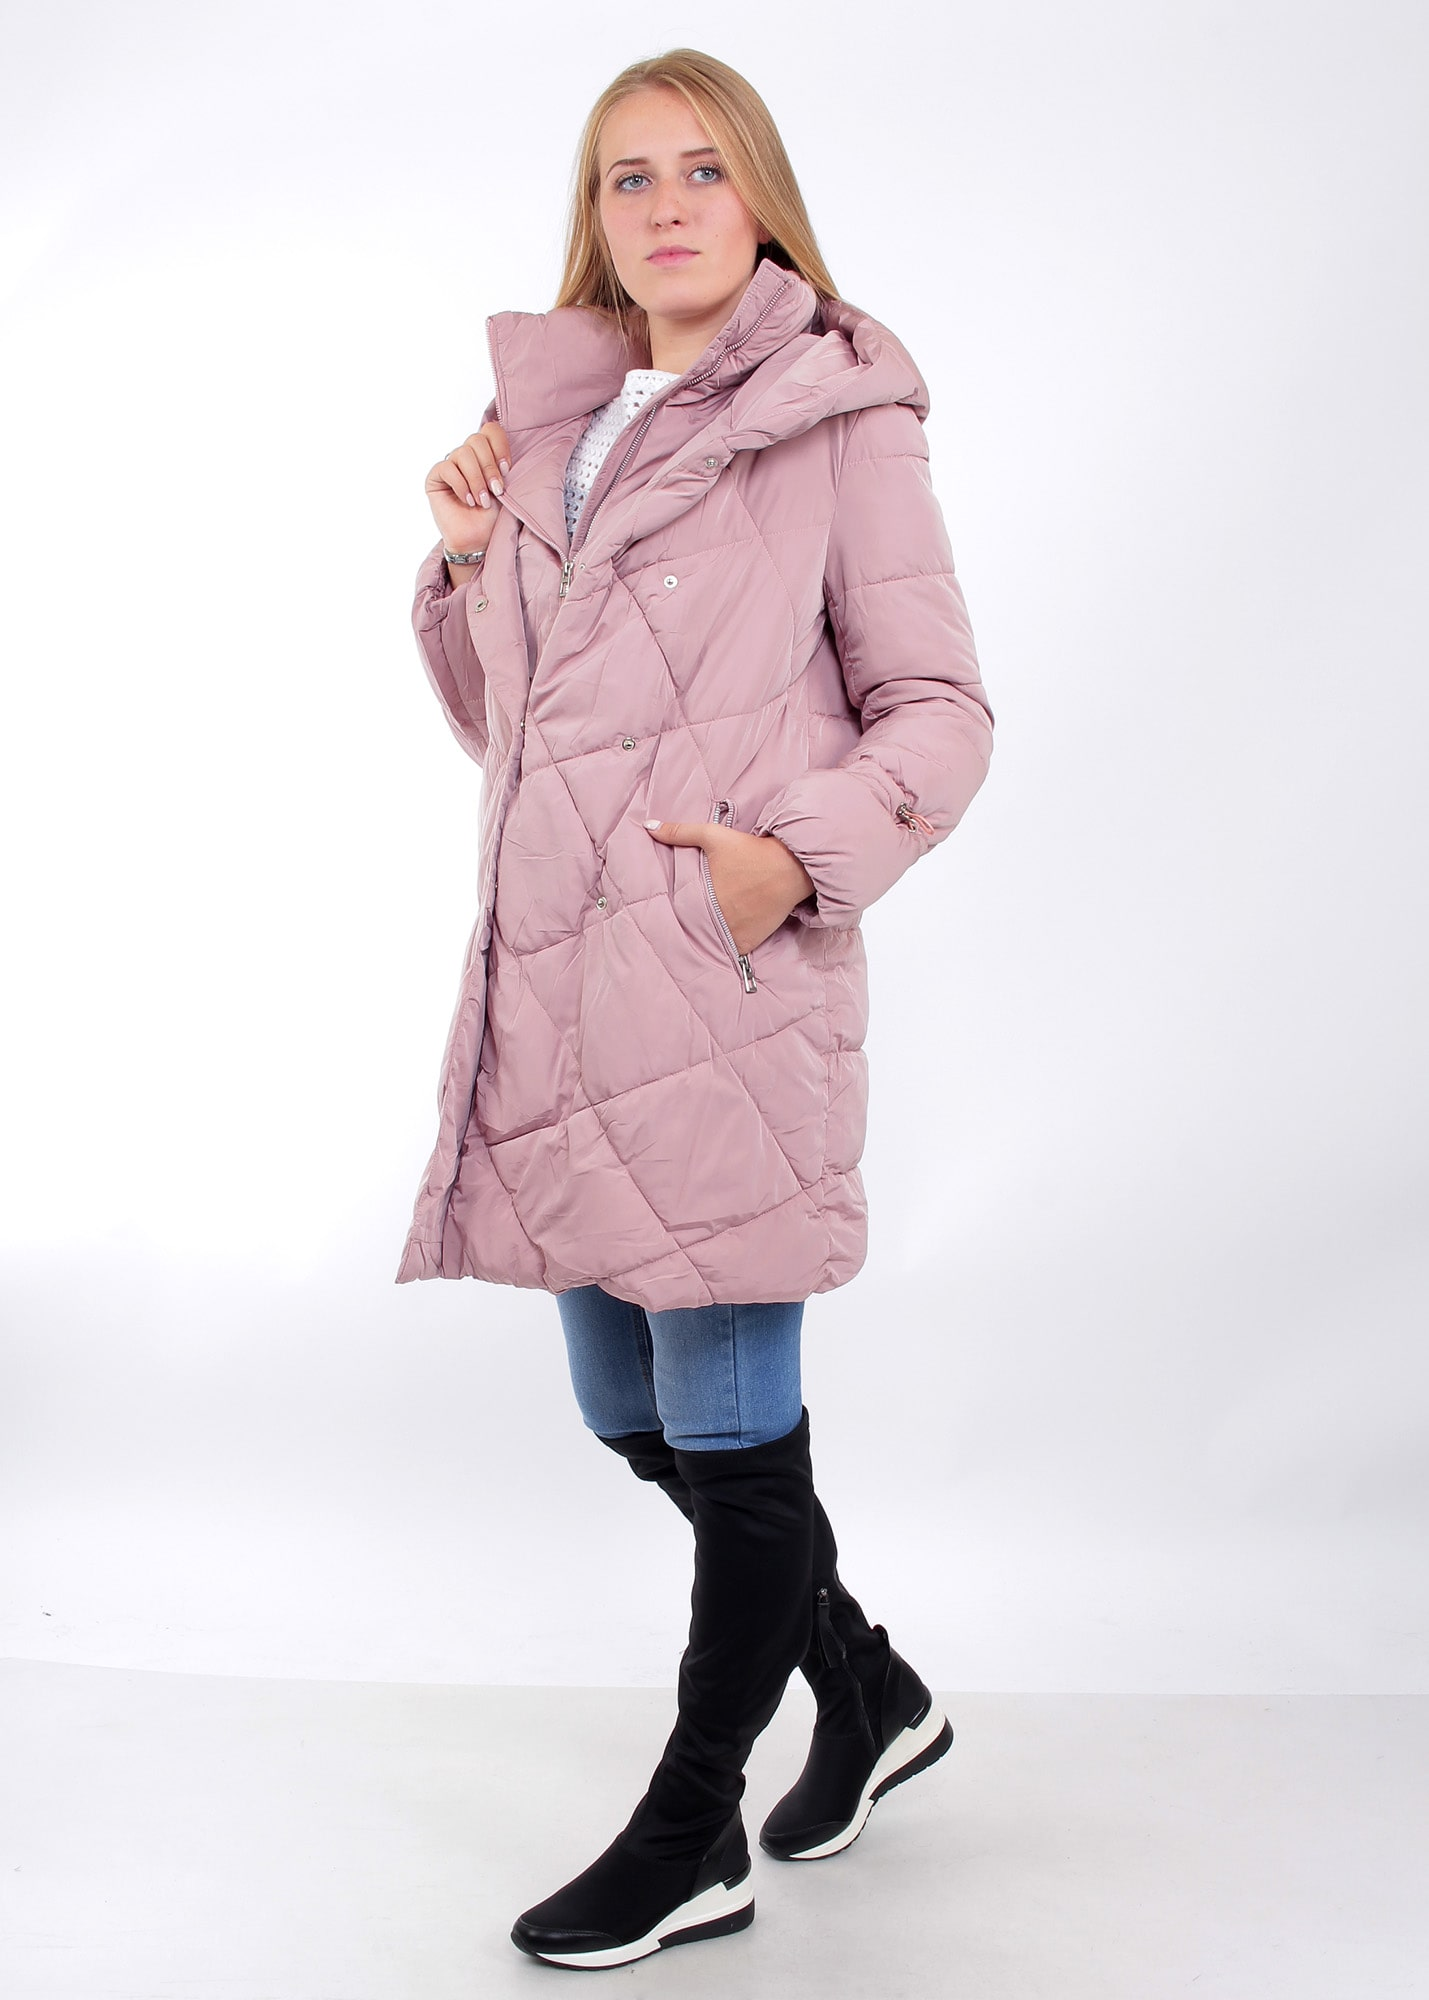 Photo №3 Elma pink women's jacket